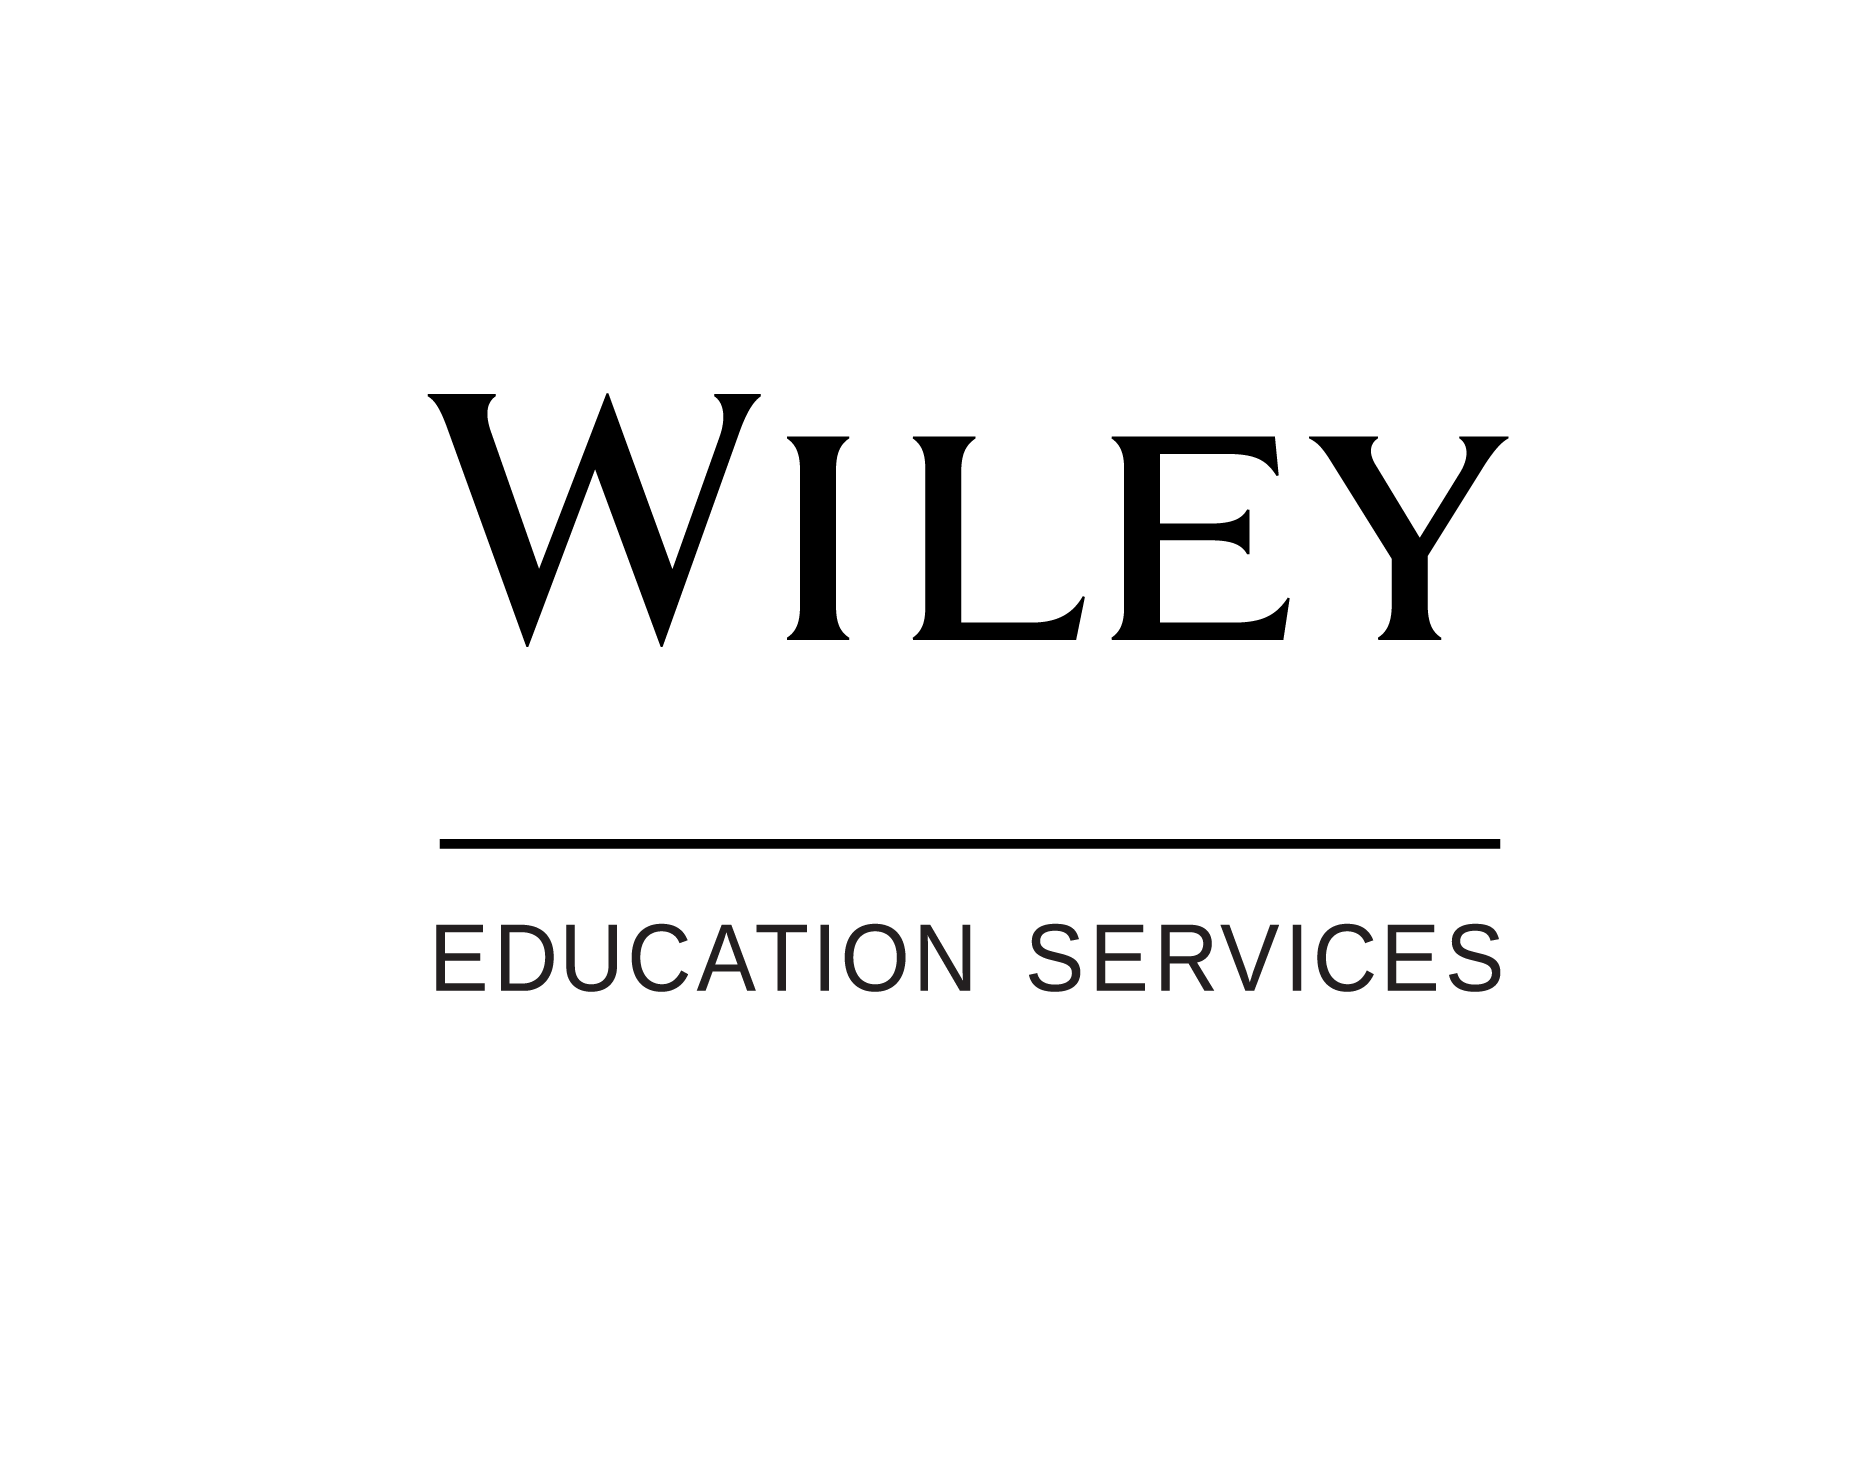 Wiley Education Services logo